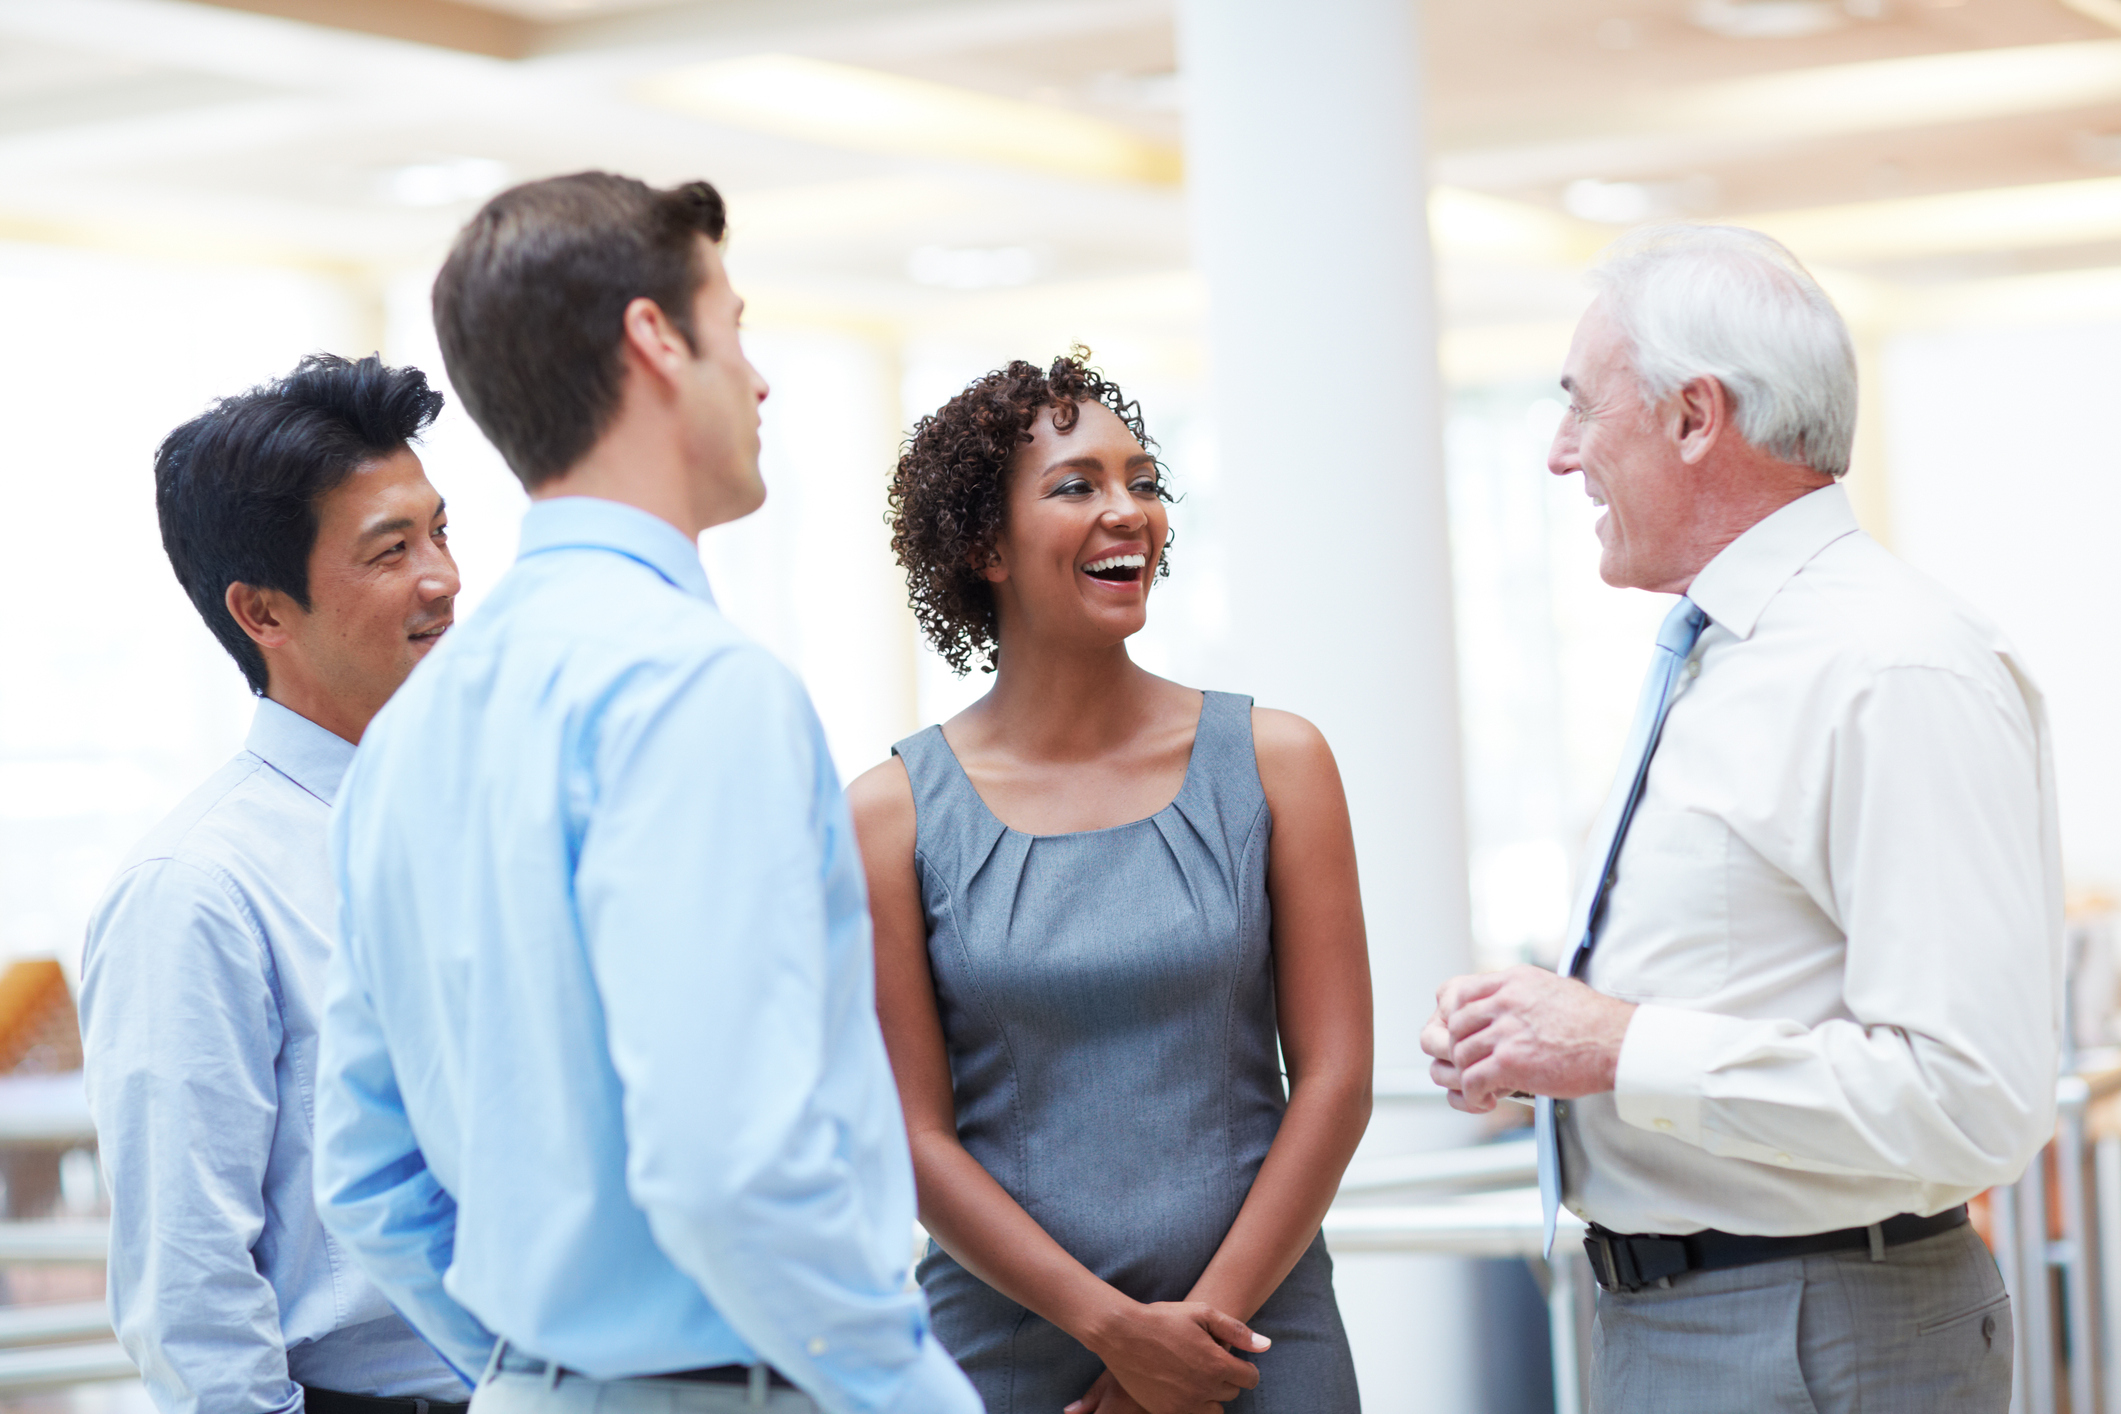 Stock Photo of businessmen and women meeting and laughing